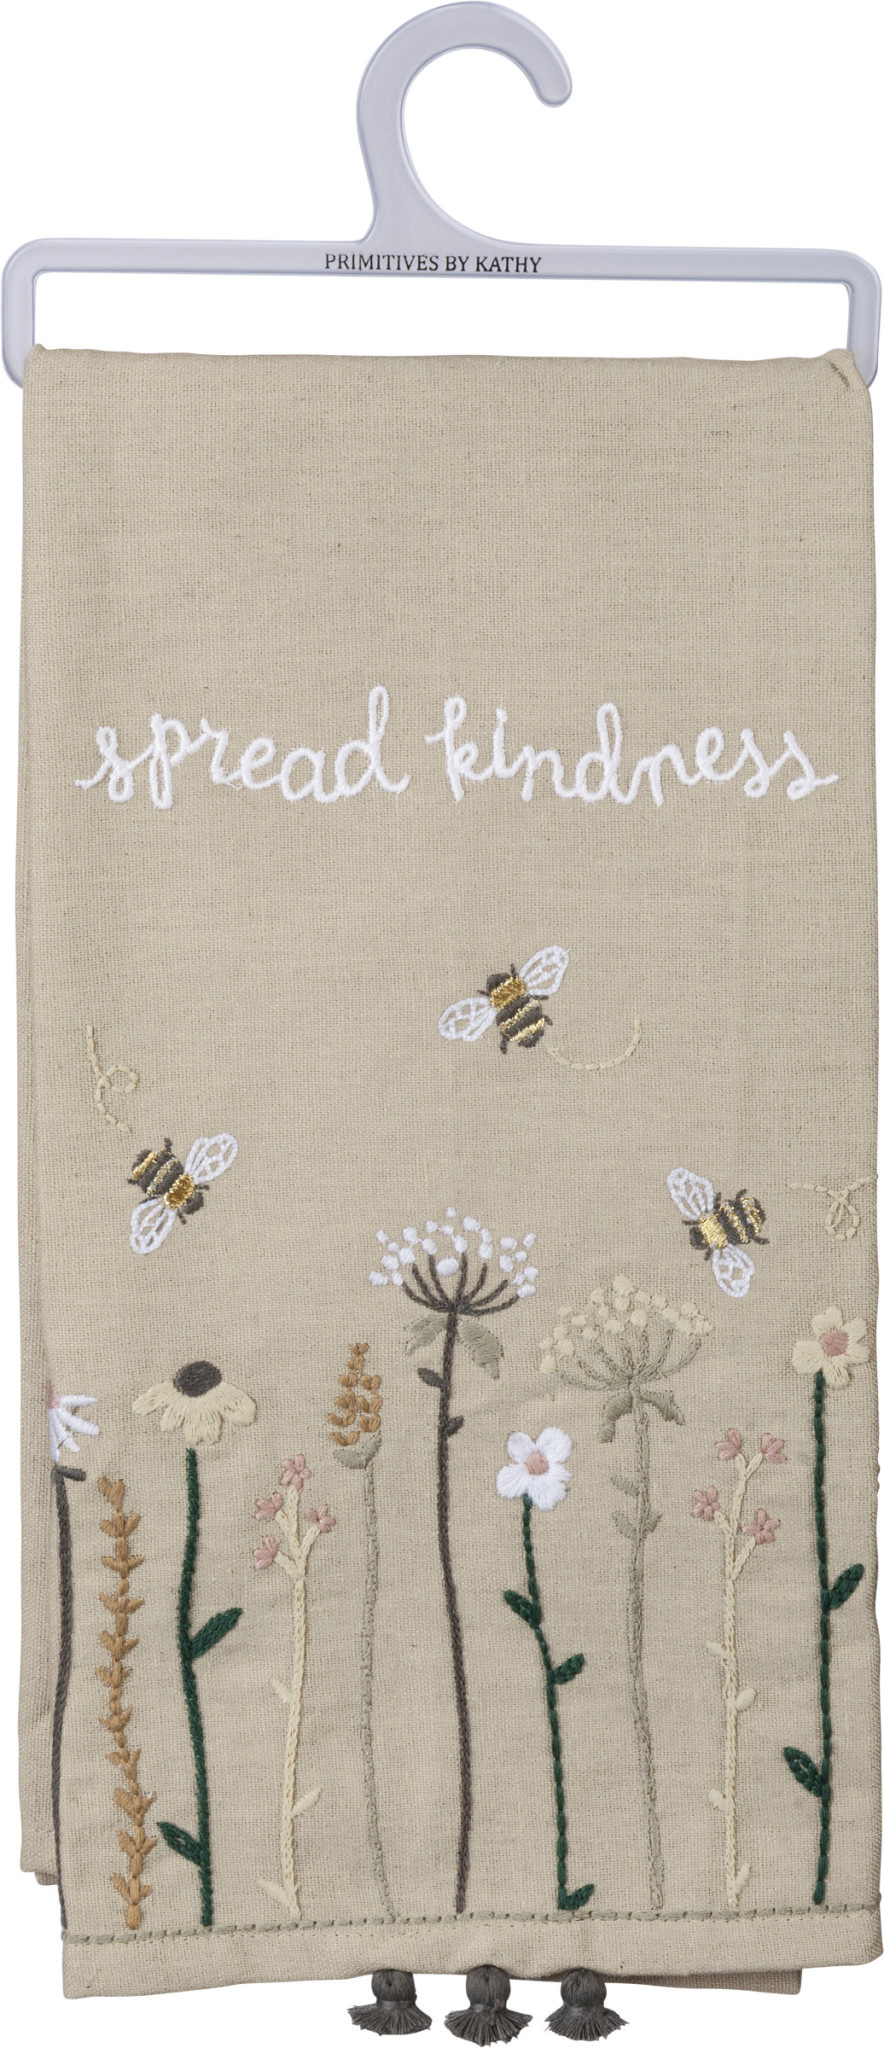 Embroidered Spread Kindness Towel